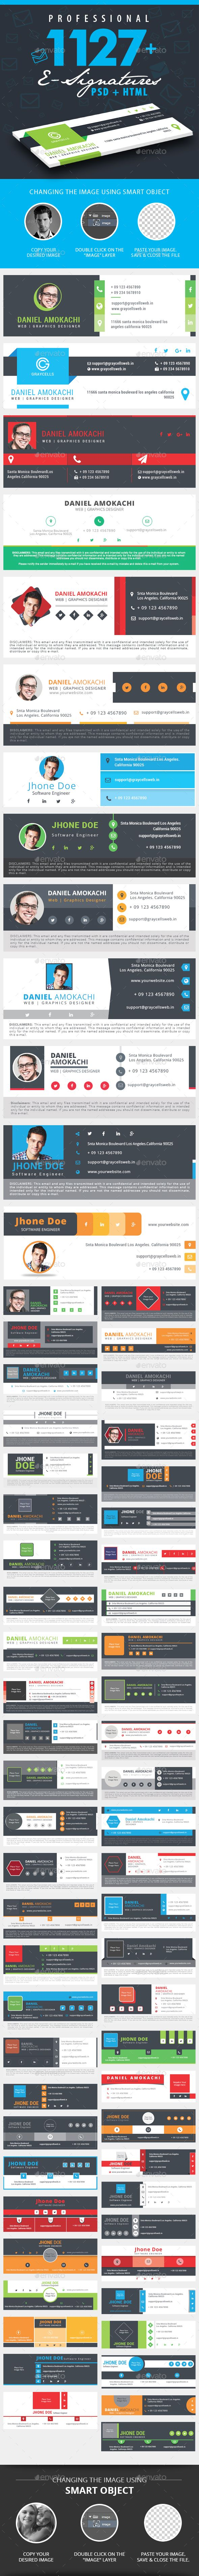 20 best Best Email Templates images on Pinterest | Email templates ...